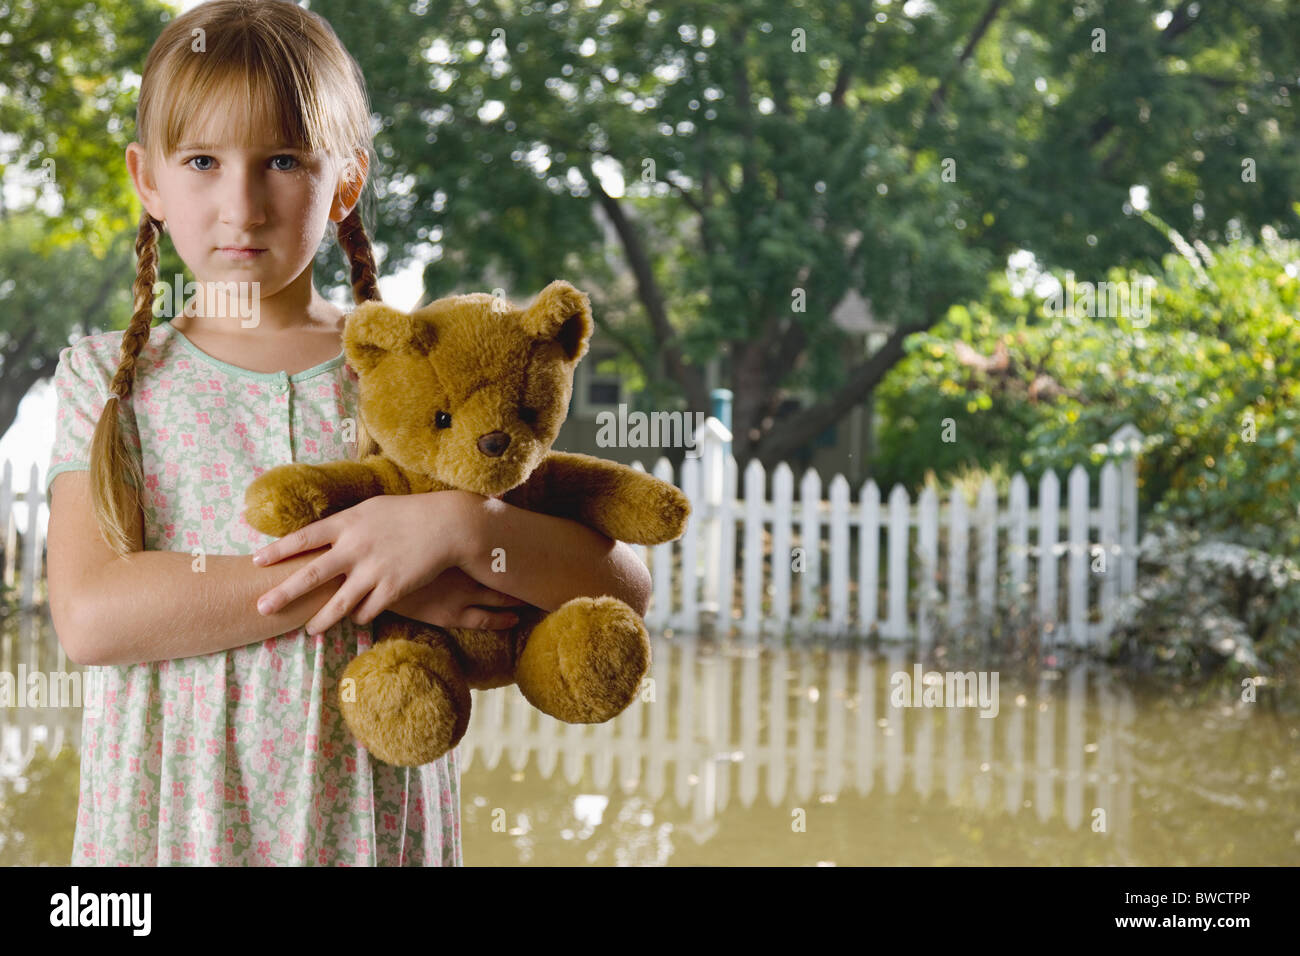 USA, Illinois, Metamora, Portrait of girl (8-9) holding teddy in flooded yard - Stock Image